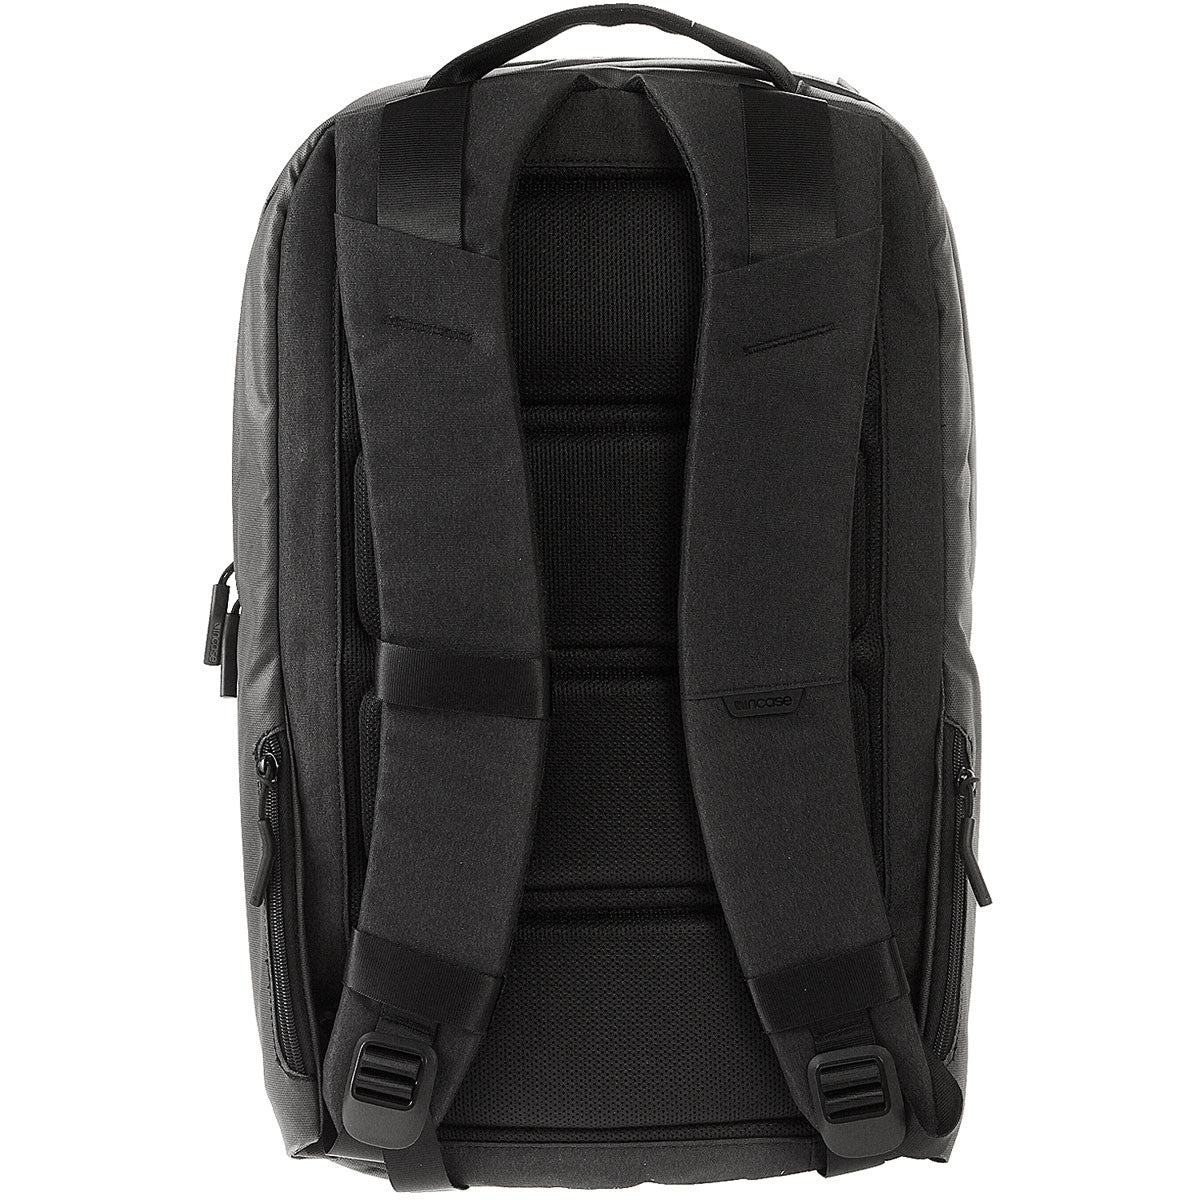 Incase: City Collection Backpack - Black (CL55450) back